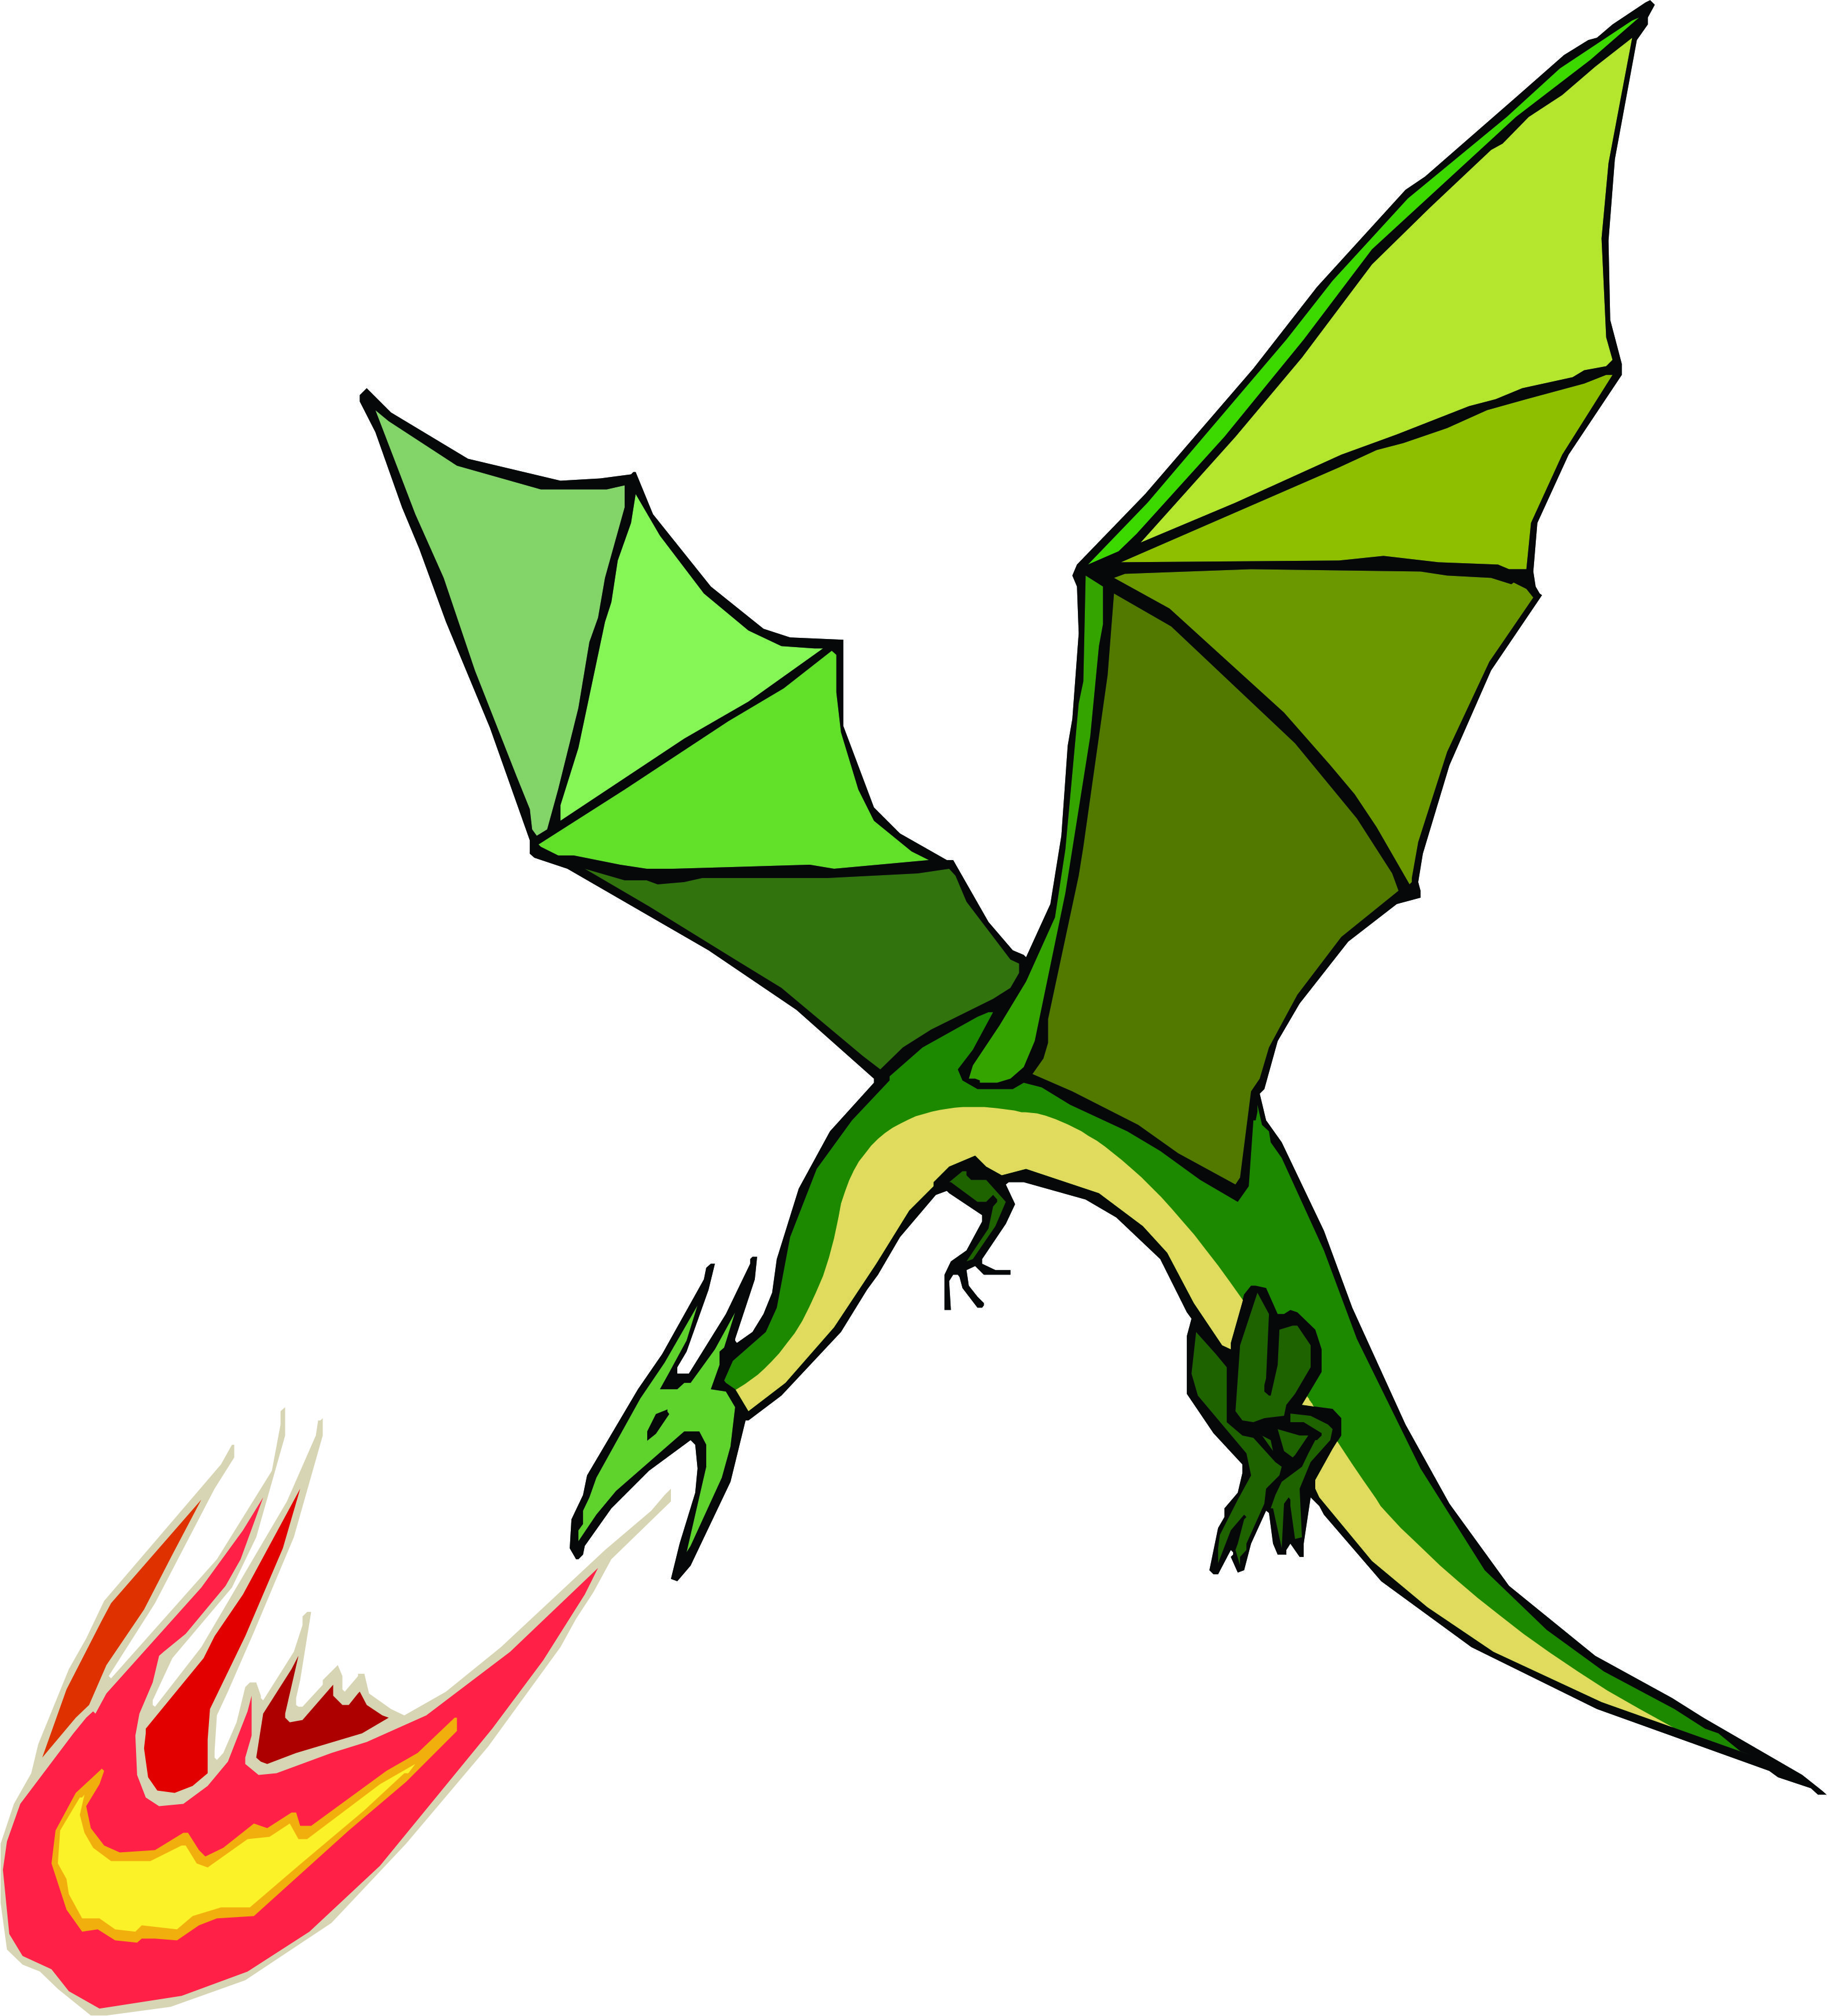 Fiery dragon clipart clipart freeuse stock Dragon Fire Clipart | Clipart Panda - Free Clipart Images clipart freeuse stock